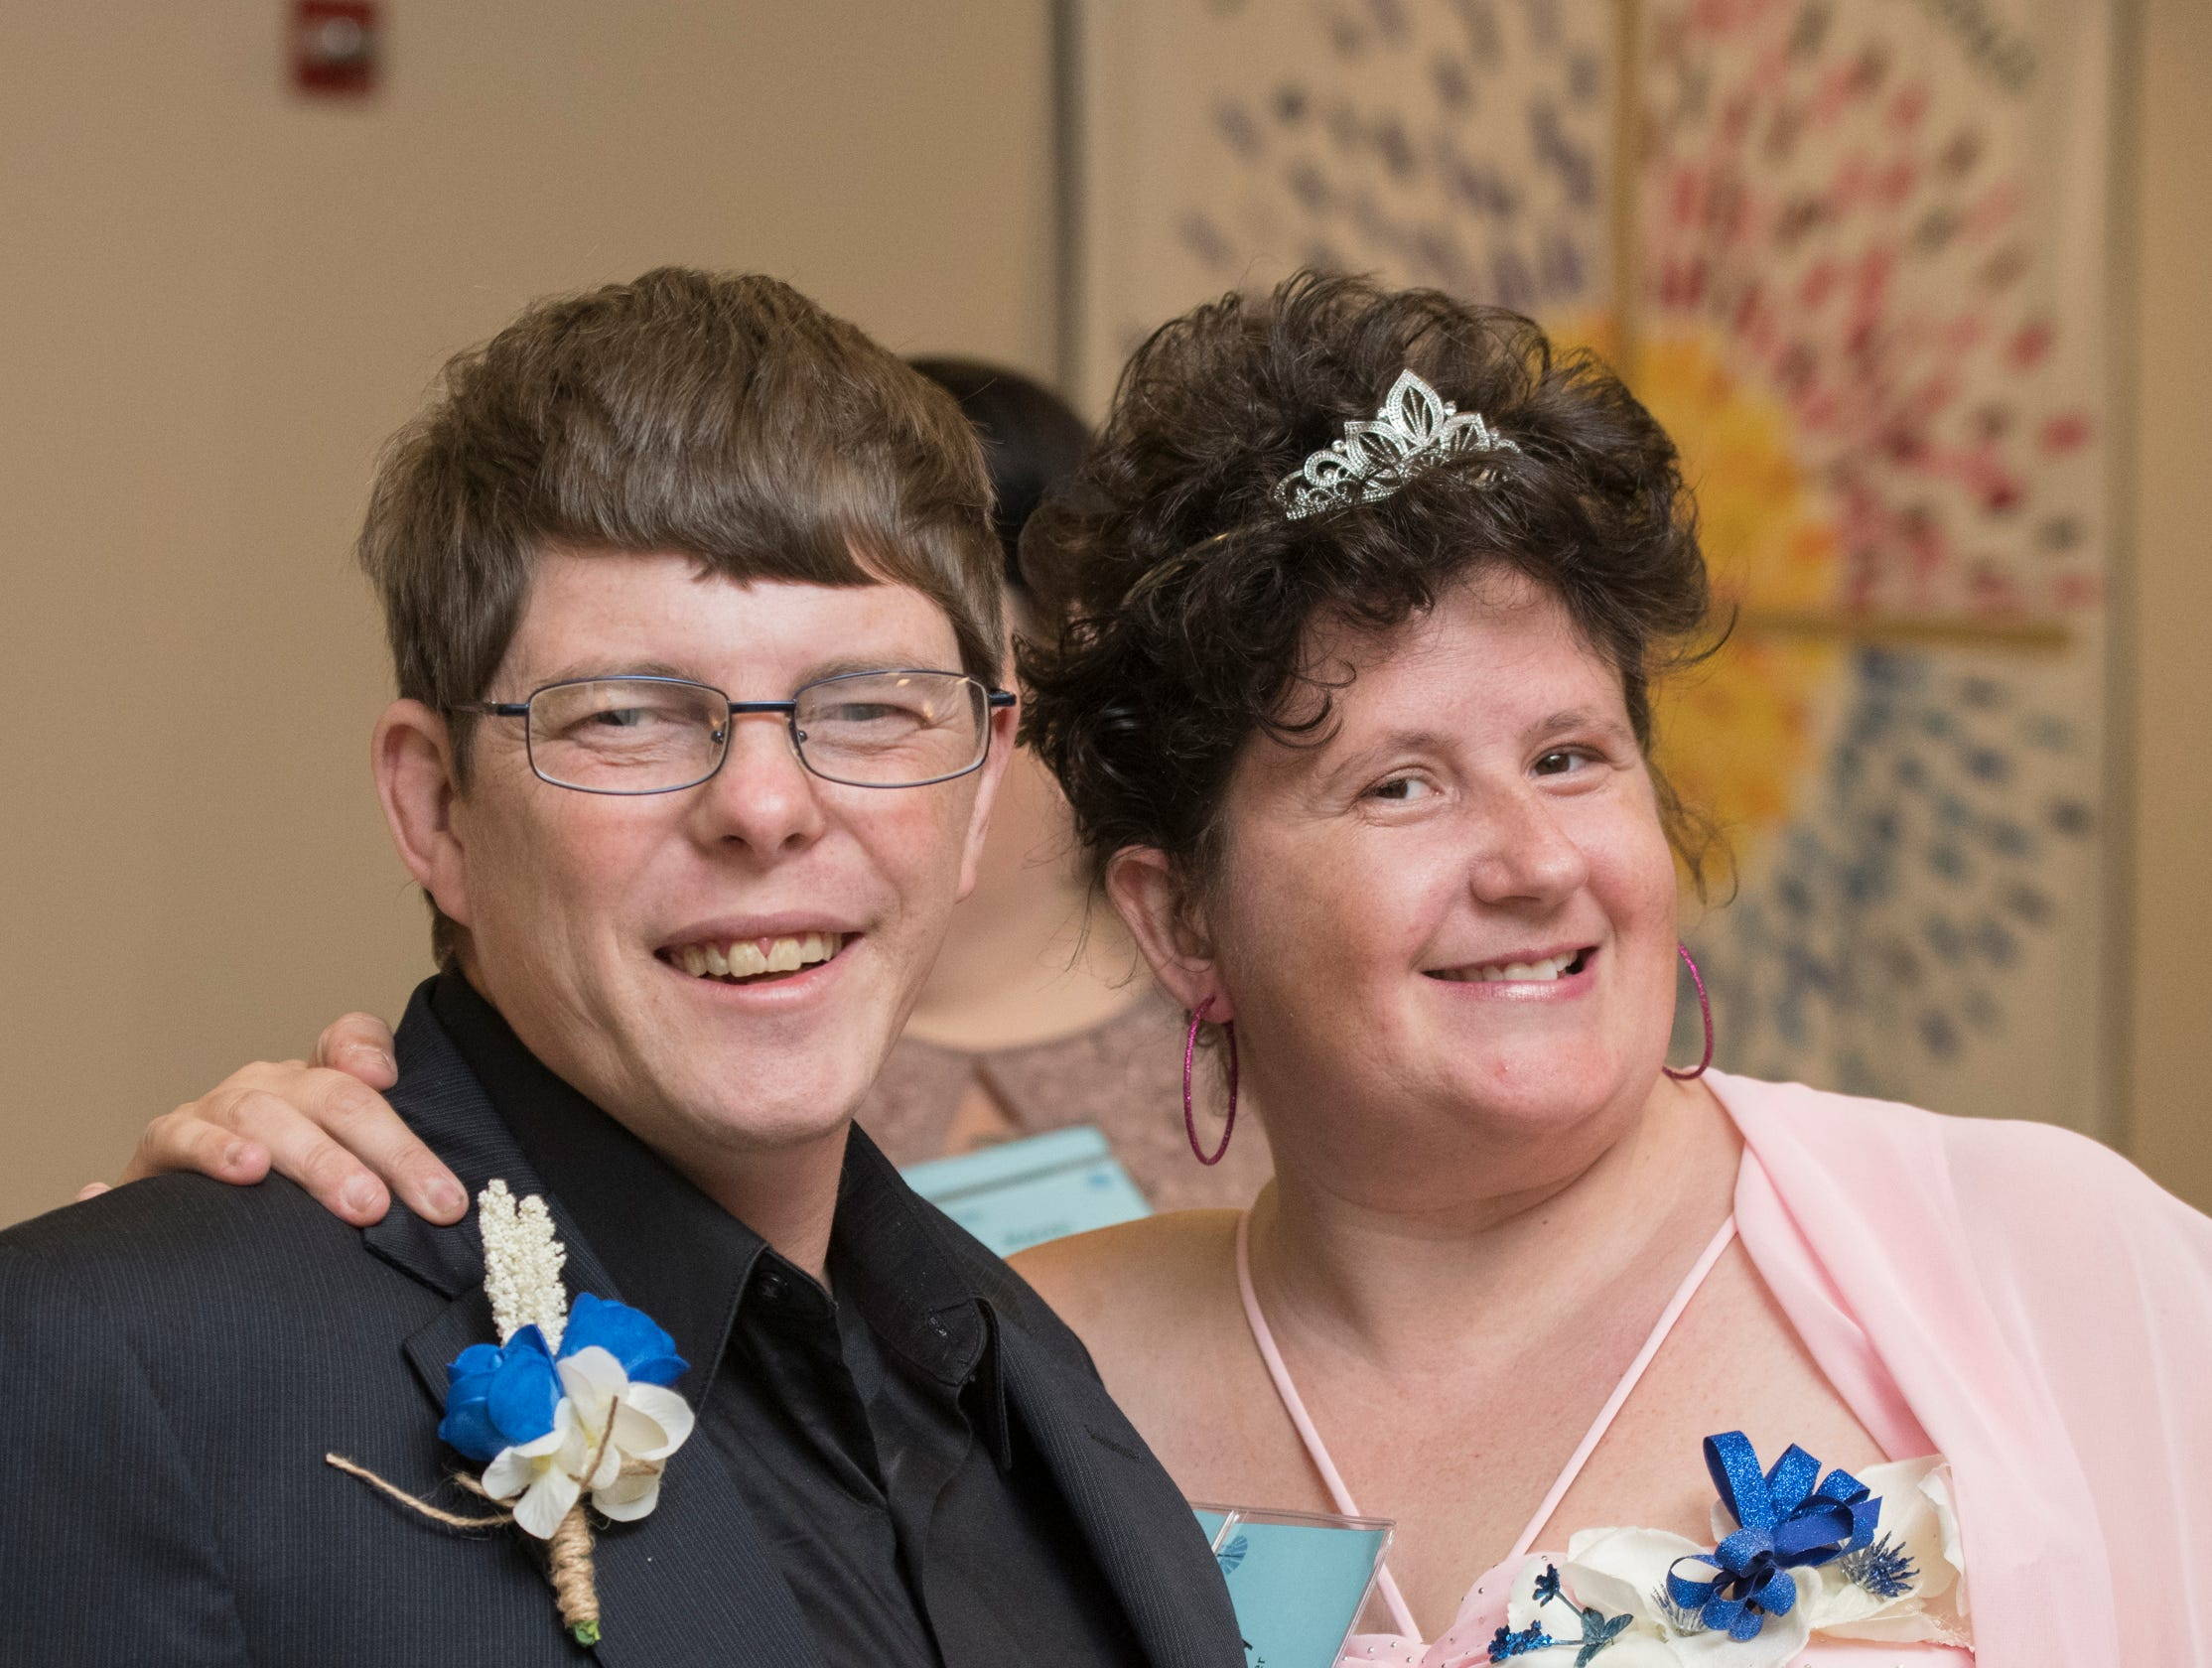 Erick Turner and Kelly Swier pose for a photo at the beginning of the Night to Shine prom for people with special needs sponsored by the Tim Tebow Foundation at Perdido Bay United Methodist Church in Pensacola on Friday, February 8, 2019.